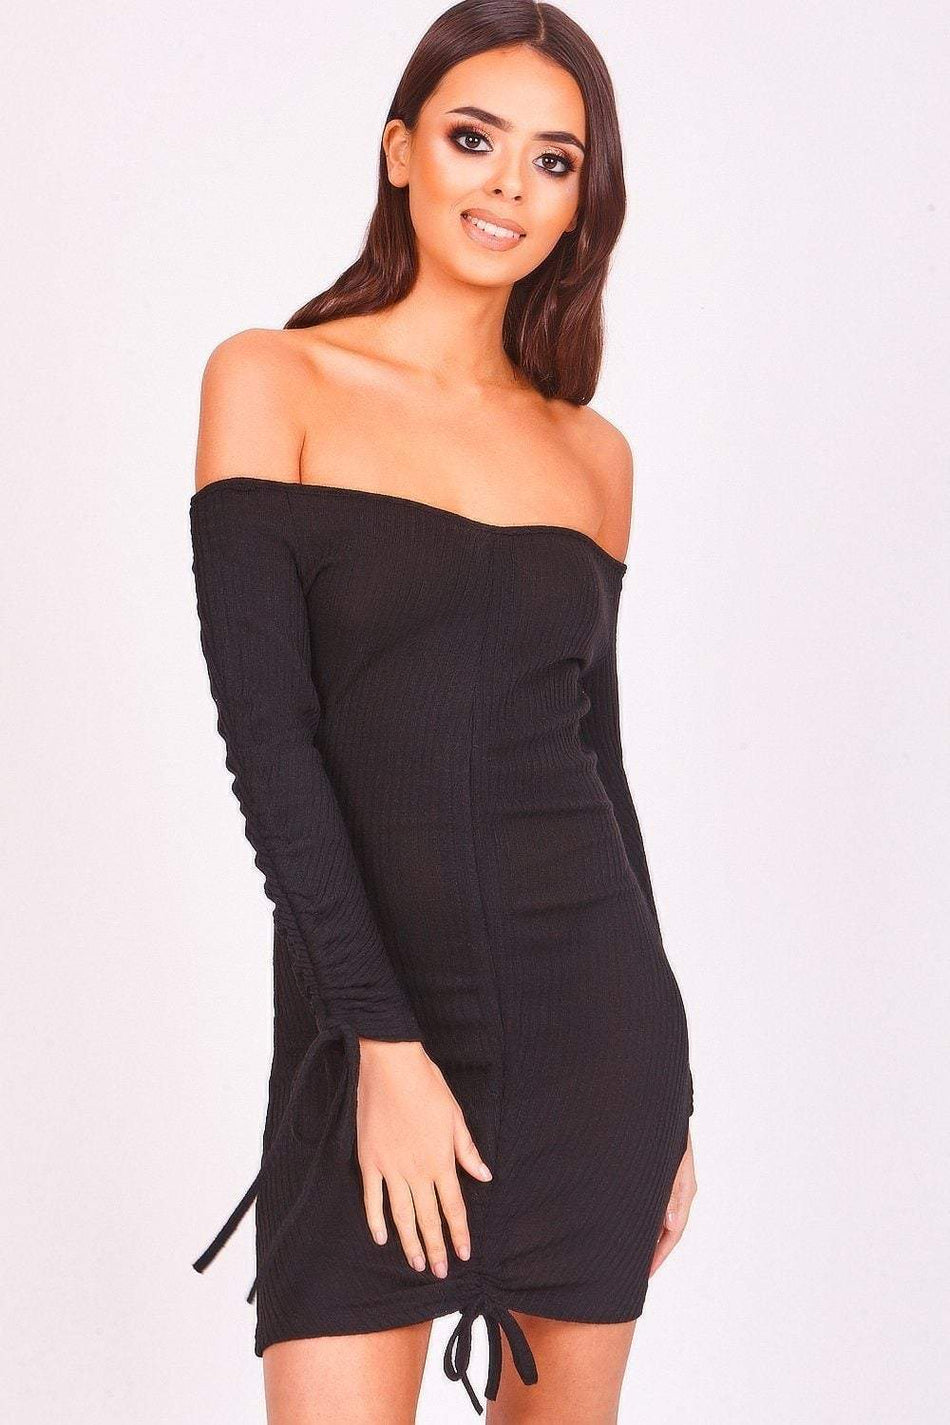 Black Ribbed Ruched Bardot Dress - KATCH ME